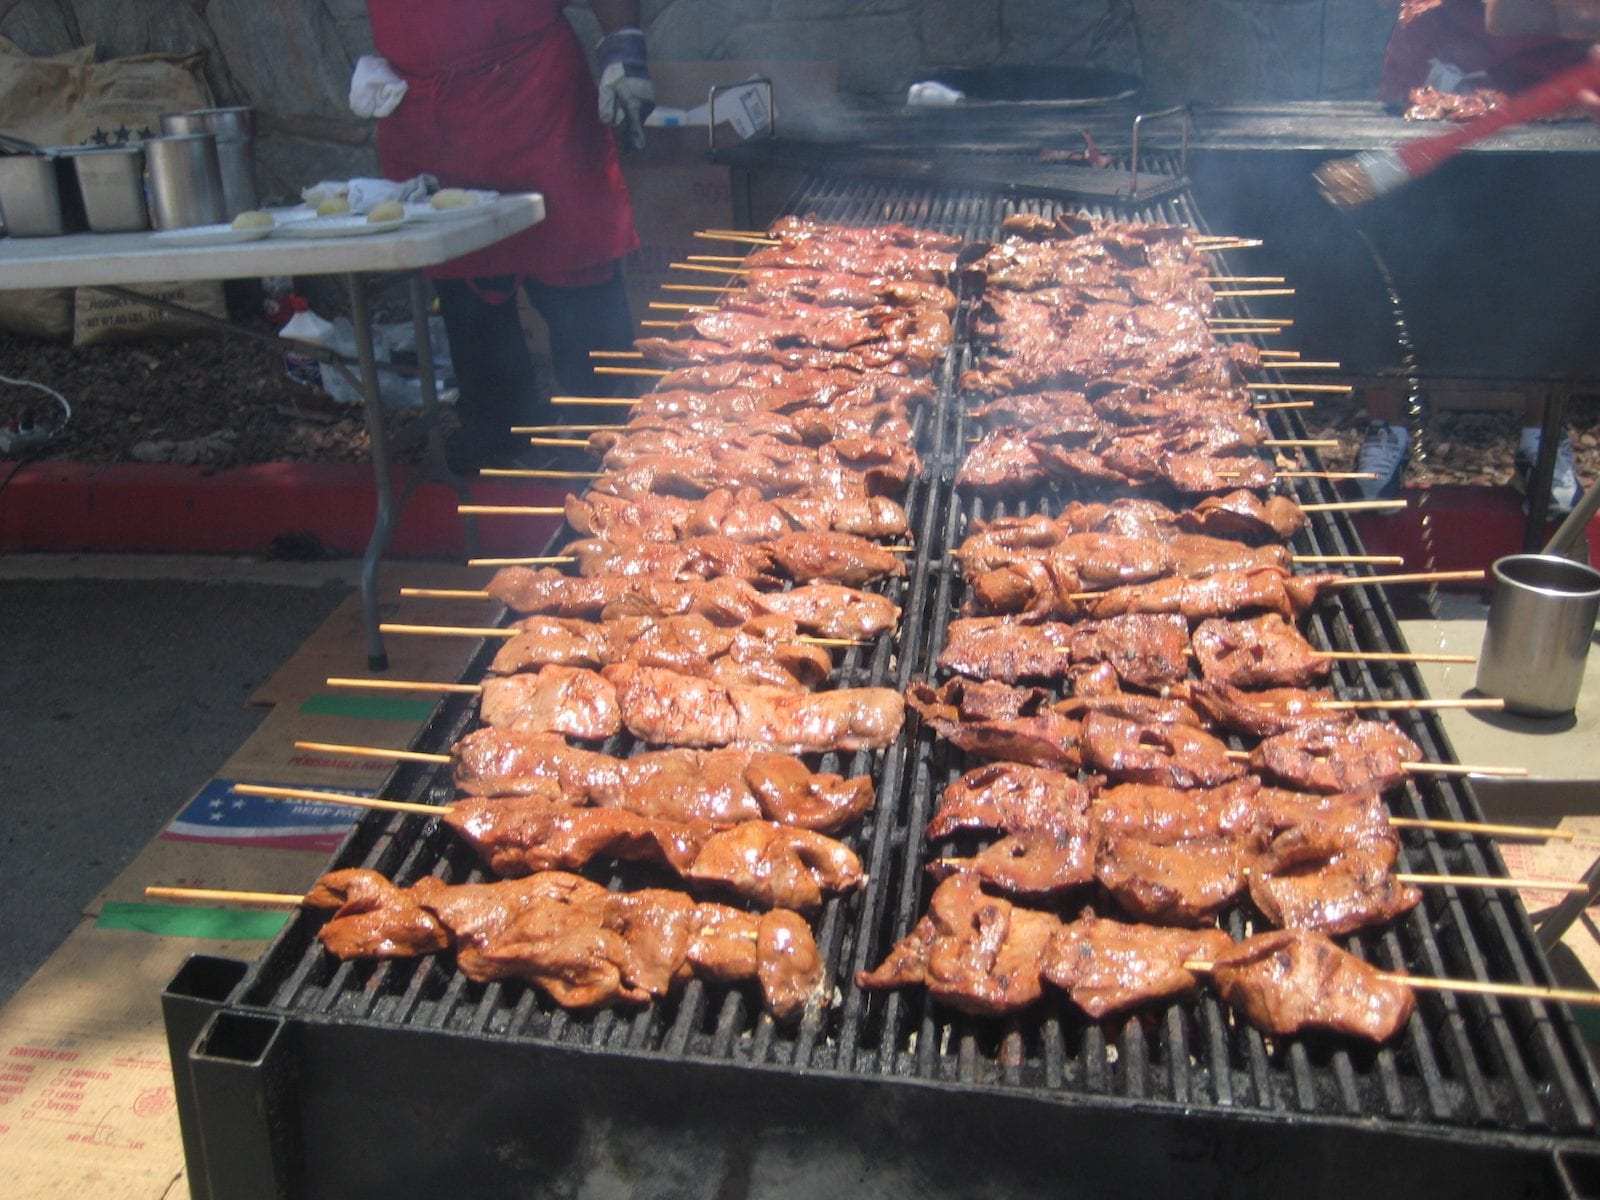 Anticuchos on the grill, Peru